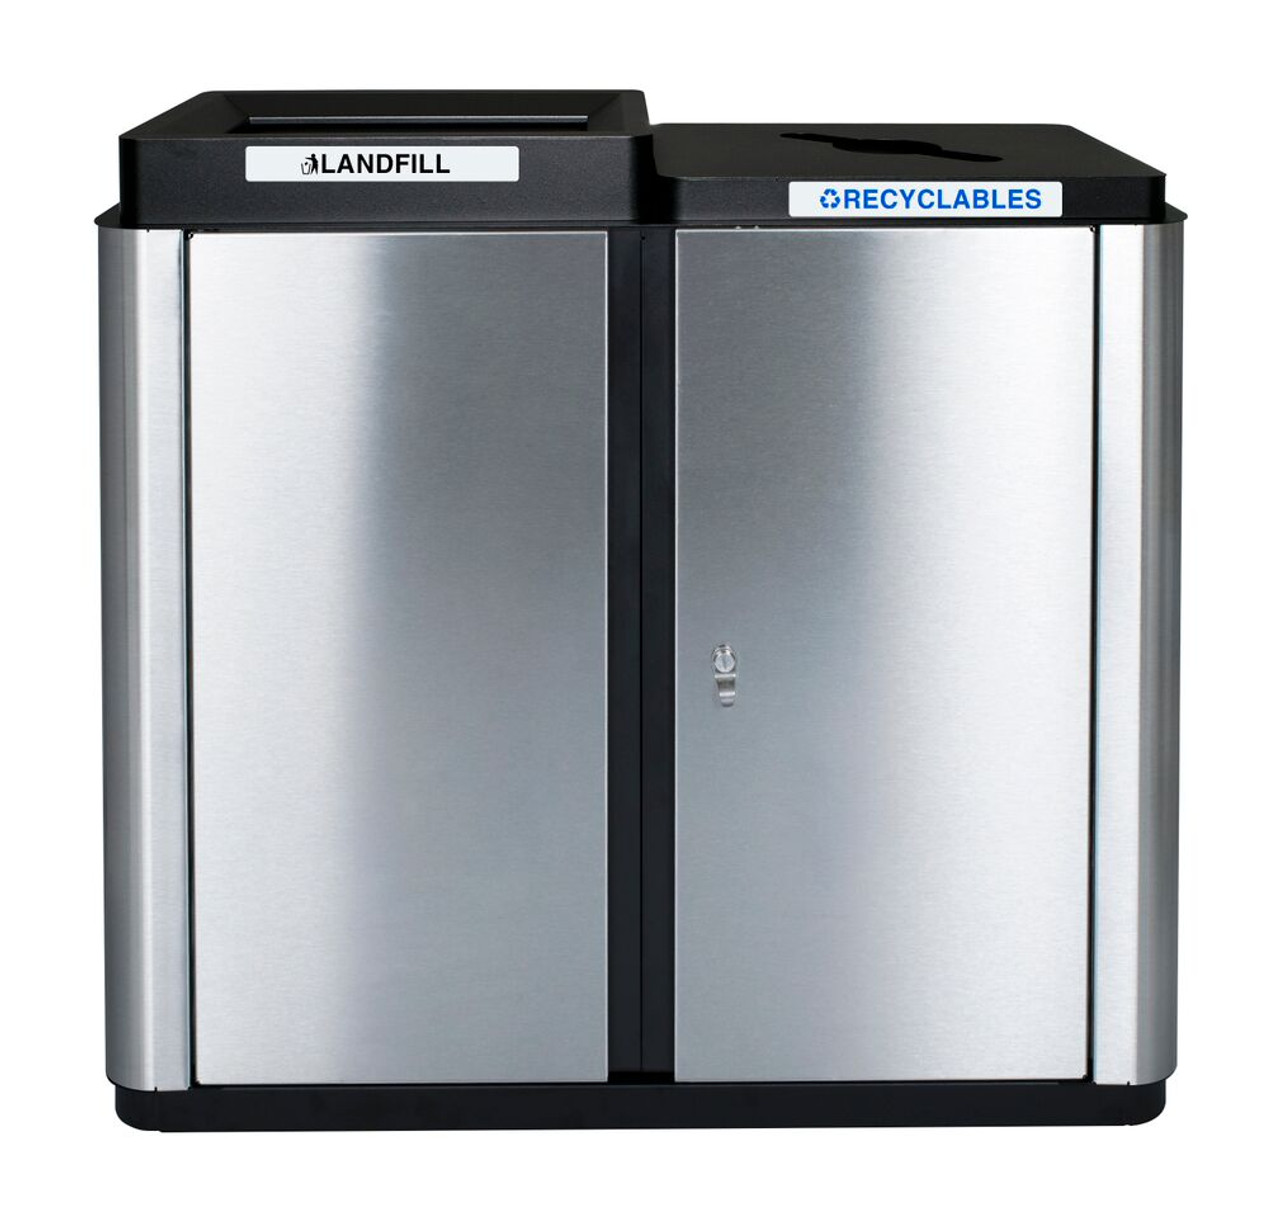 70 Gallon Echelon Collection Indoor Two Stream Recycling Receptacle (1 Waste and 1 Multi Purpose Opening)